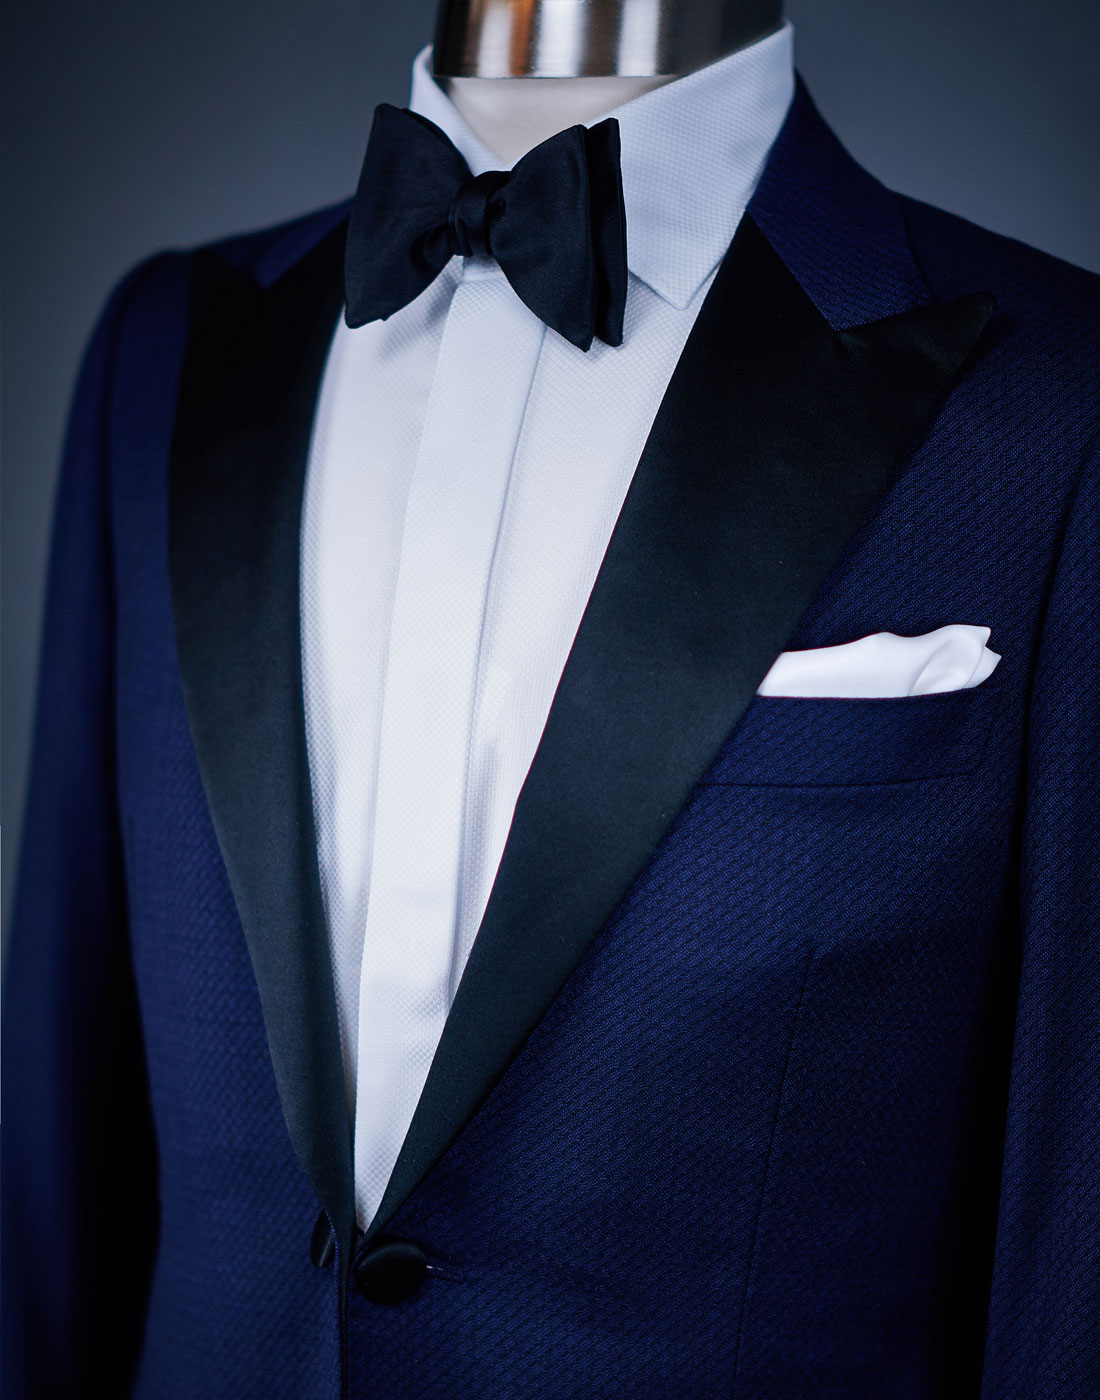 Men's bespoke tuxedo jacket with a bow tie